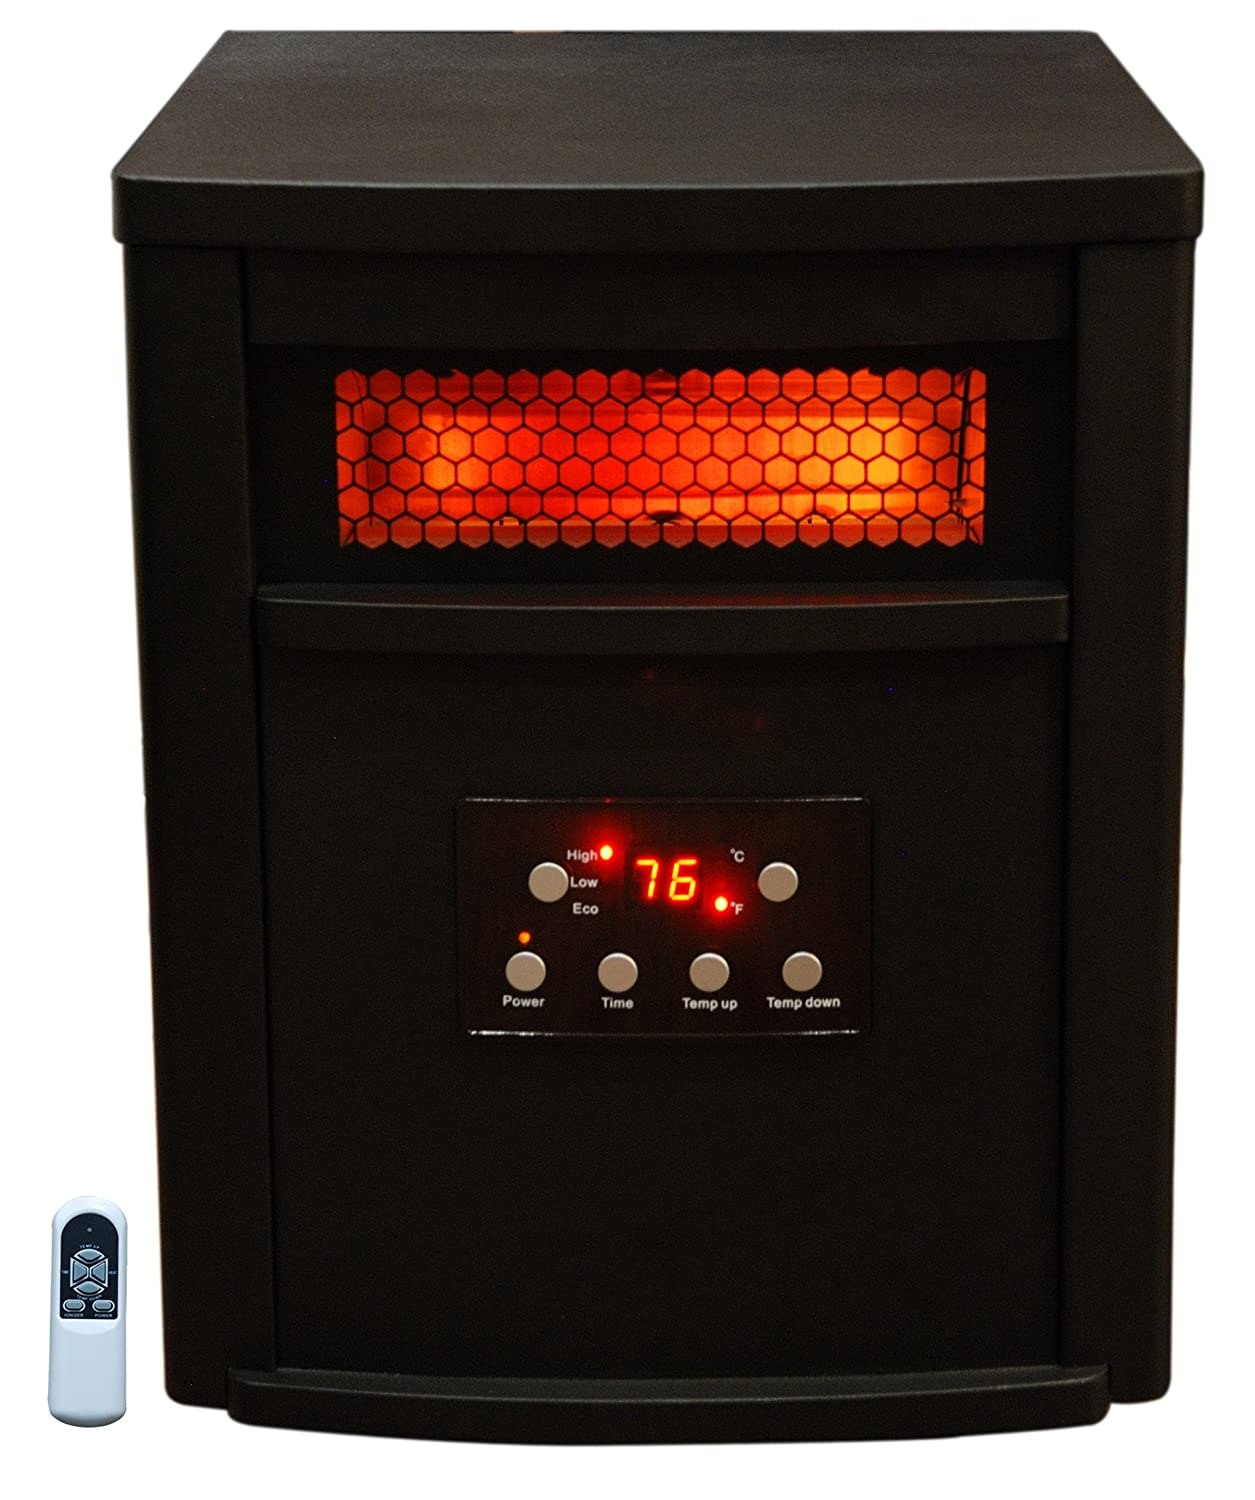 Best Infrared Space Heaters 2015 On Flipboard: best space heater for large room